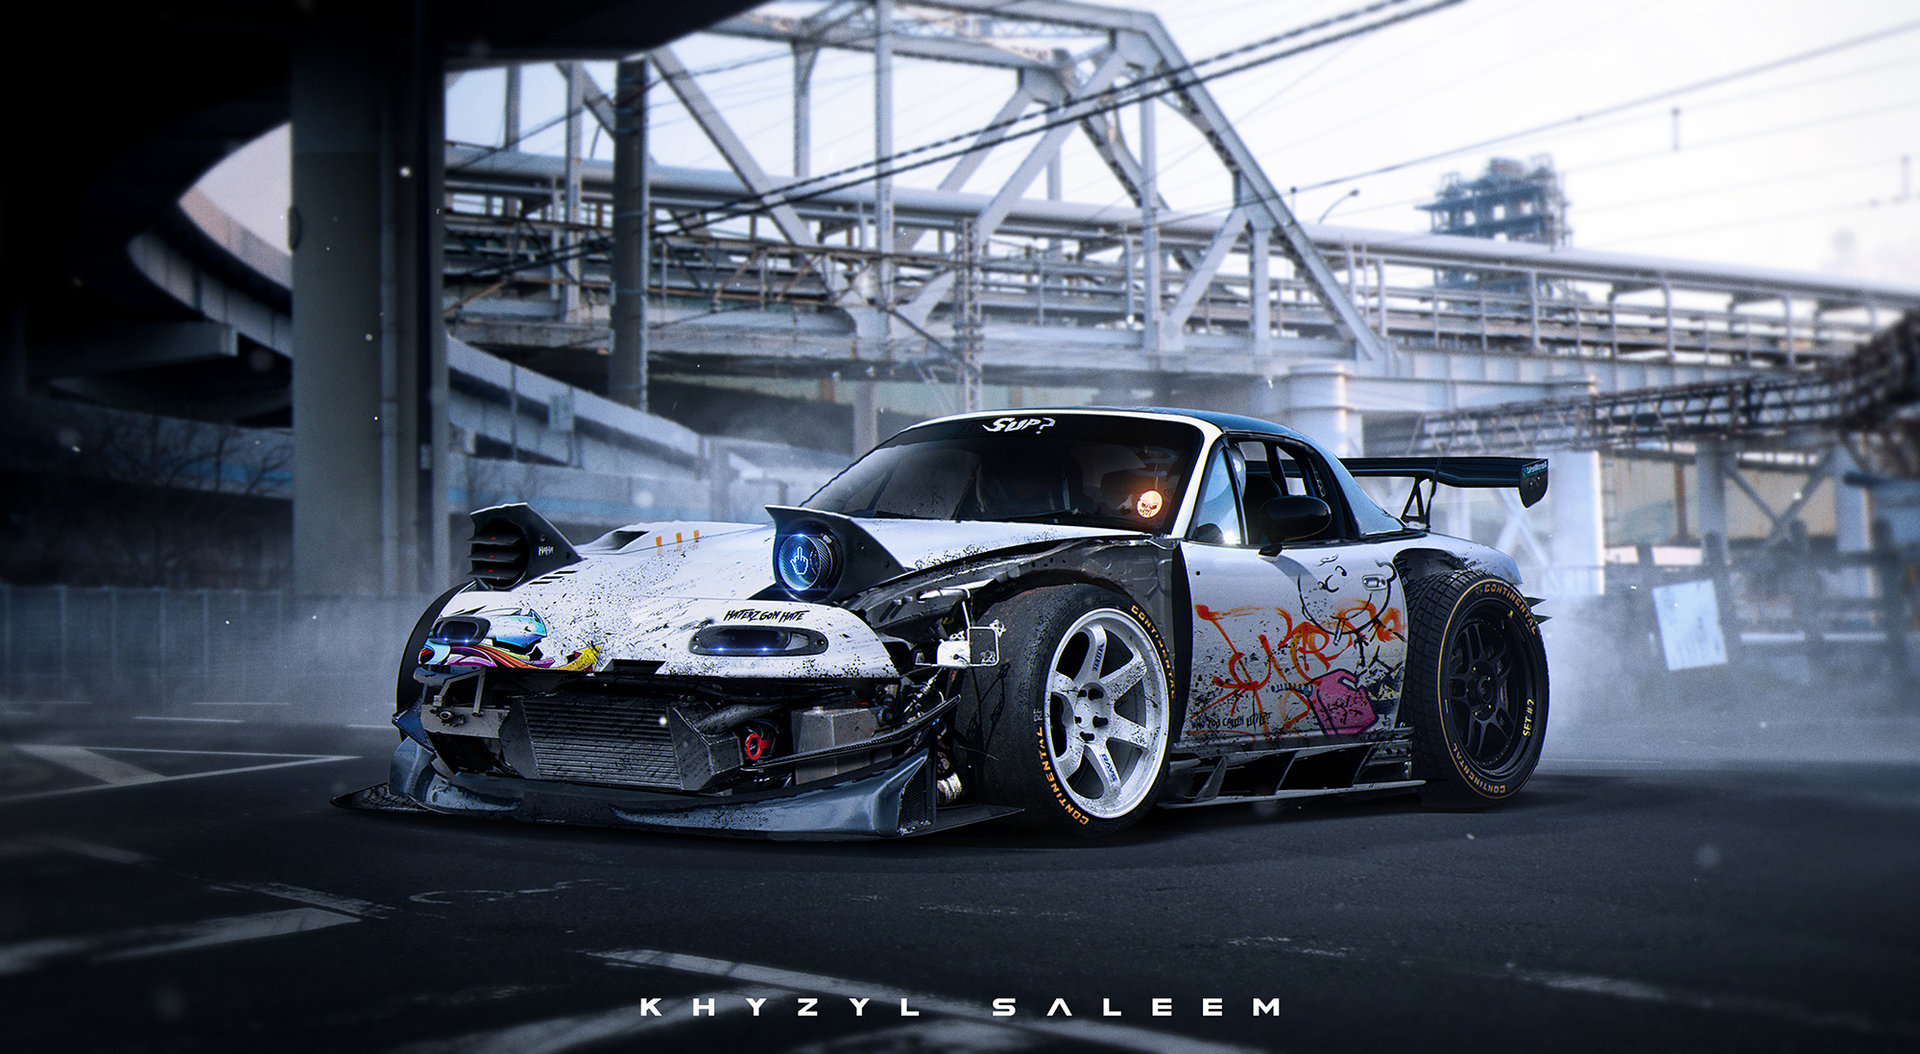 Khyzyl saleem mx5finallow